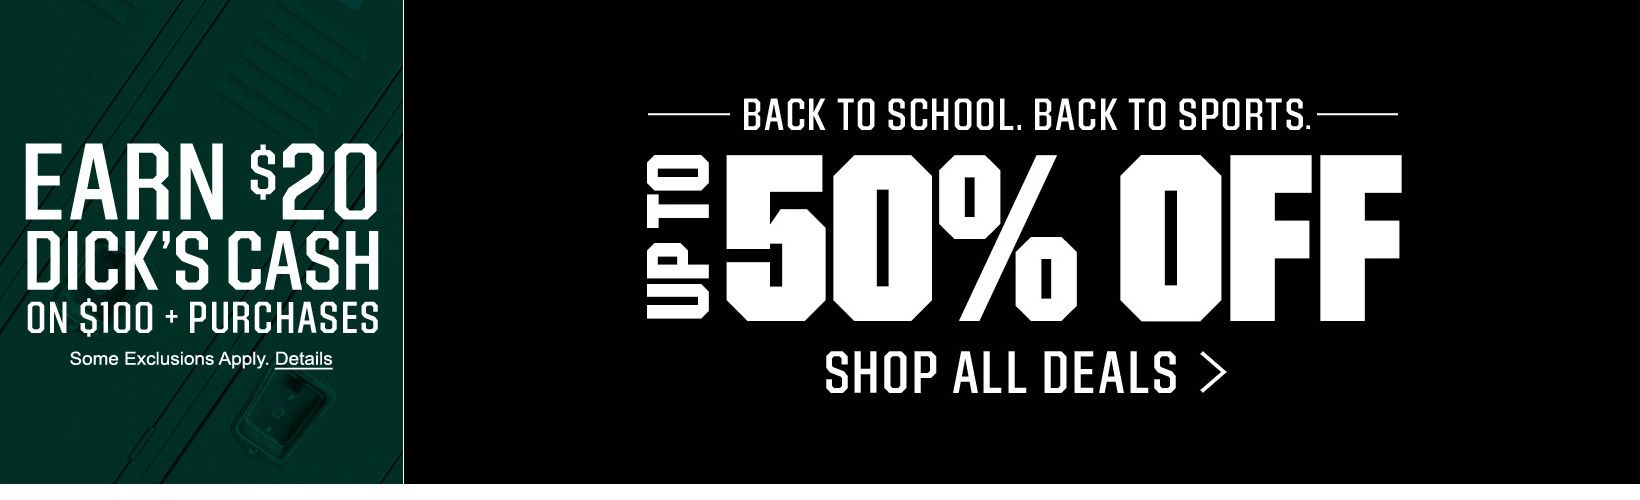 Back To School. Back to Sport. - Up to 50% Off – Shop All Deals